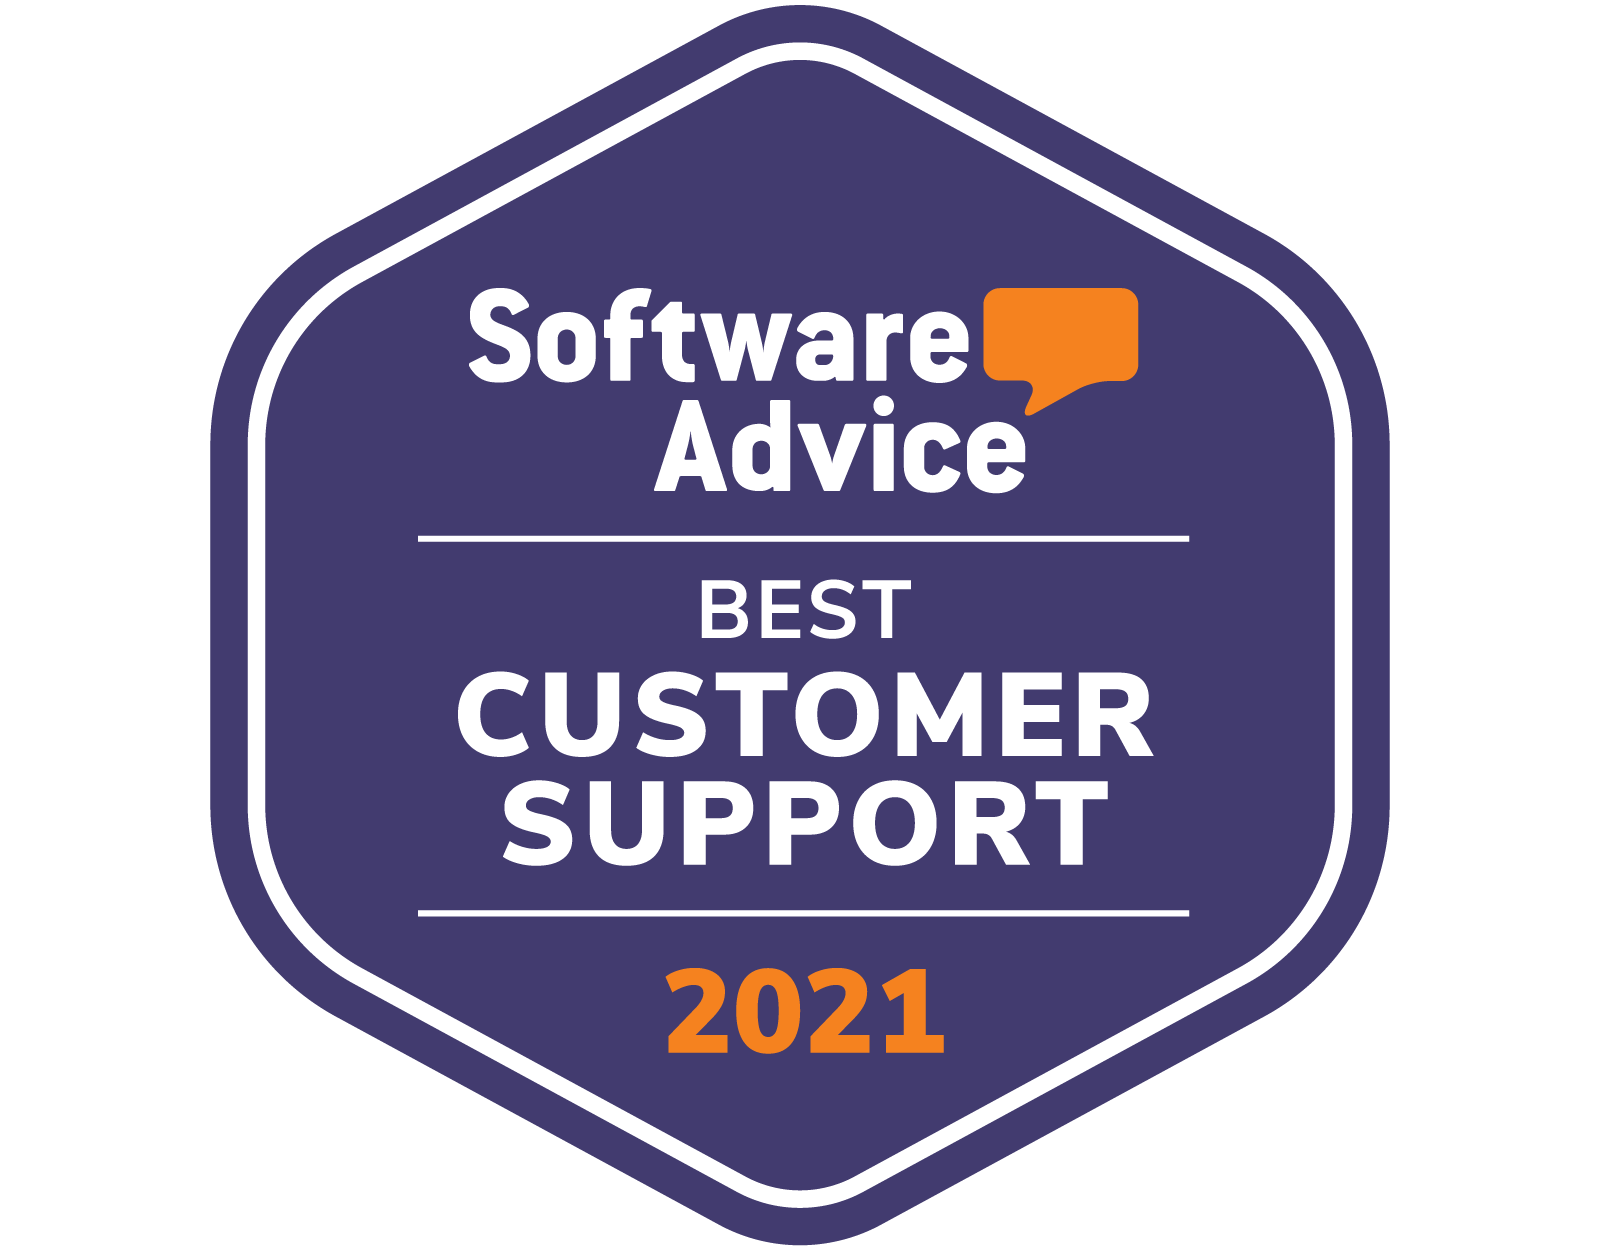 Software Advice Customer Support for Pre-Employment Assessment Tools Aug-21